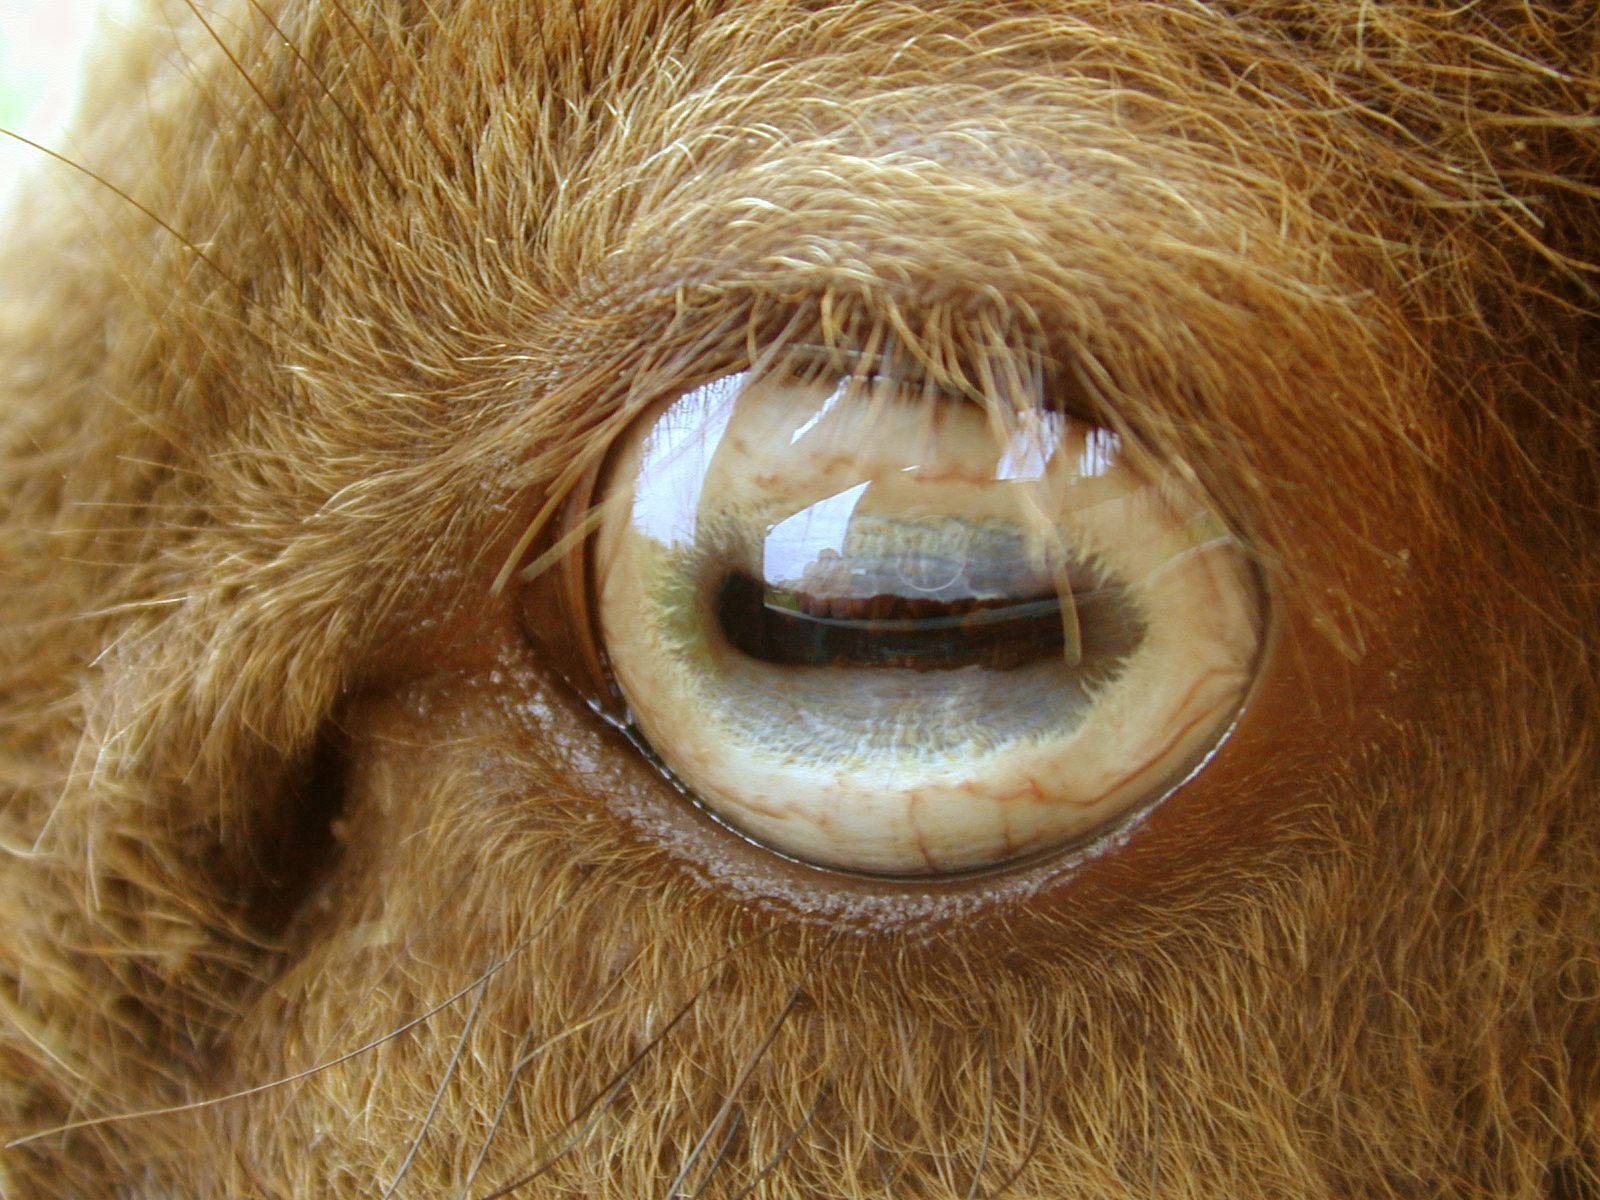 Pin By Tanya Peck On Eye Pictures Pinterest Eyes Animals And Goats